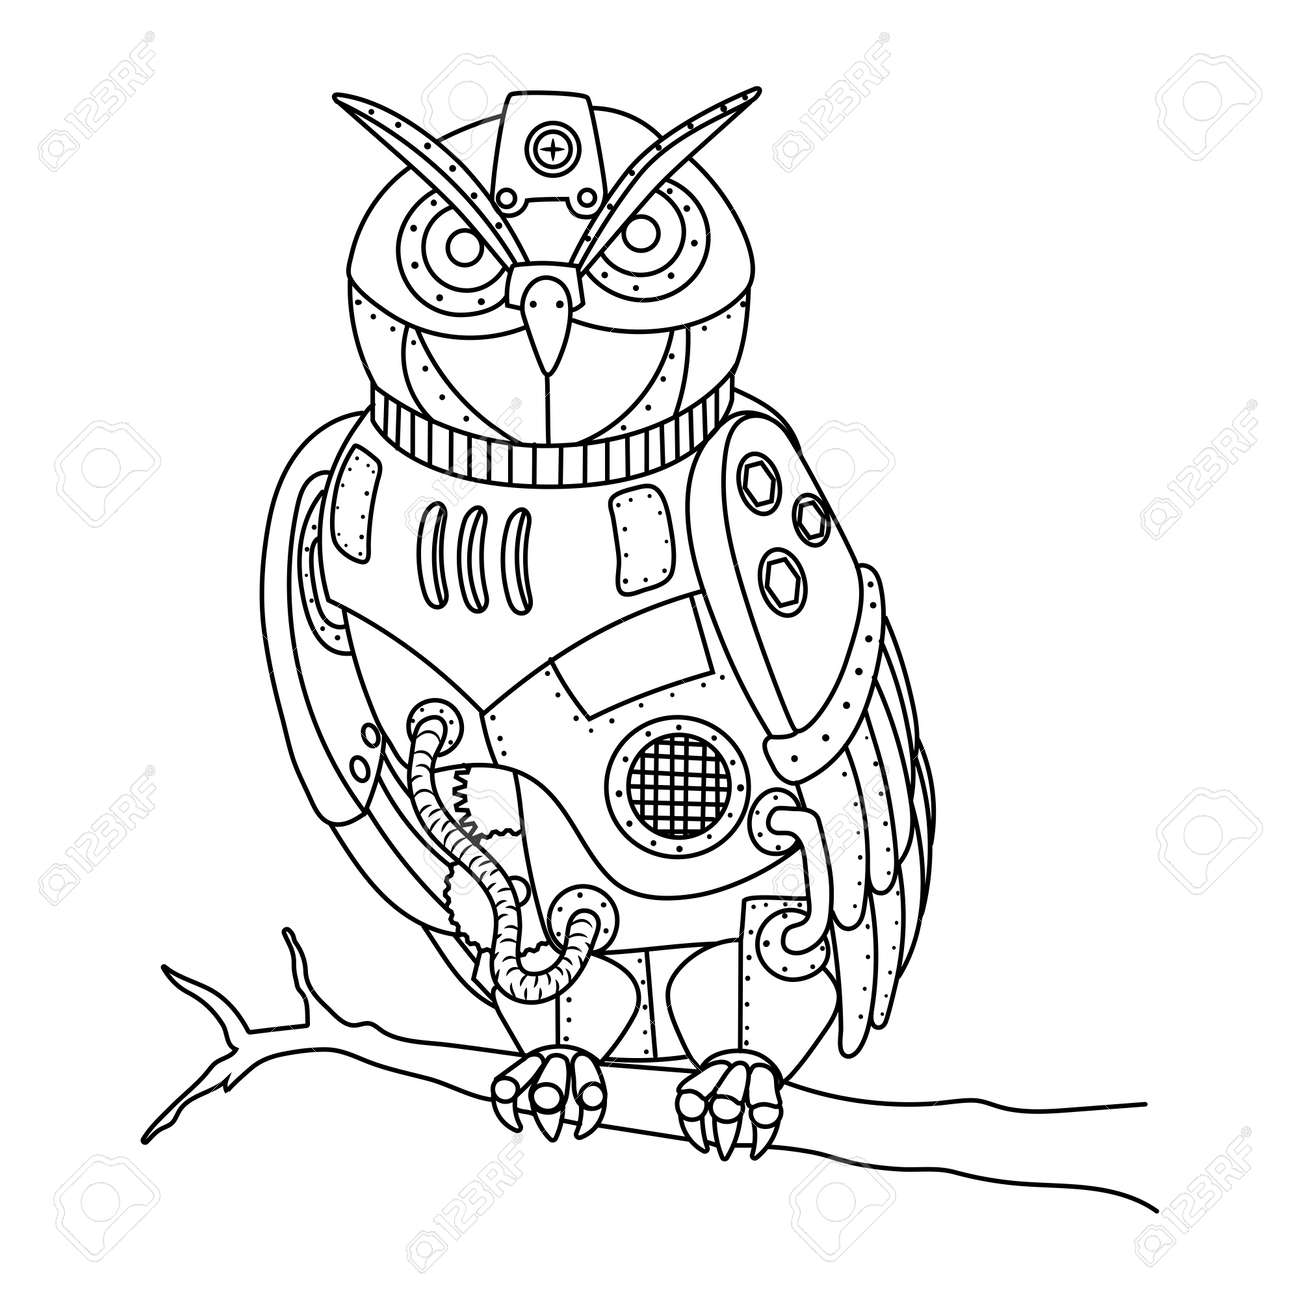 ste unk style owl coloring book vector royalty free cliparts  ste unk style owl coloring book vector stock vector 76782548